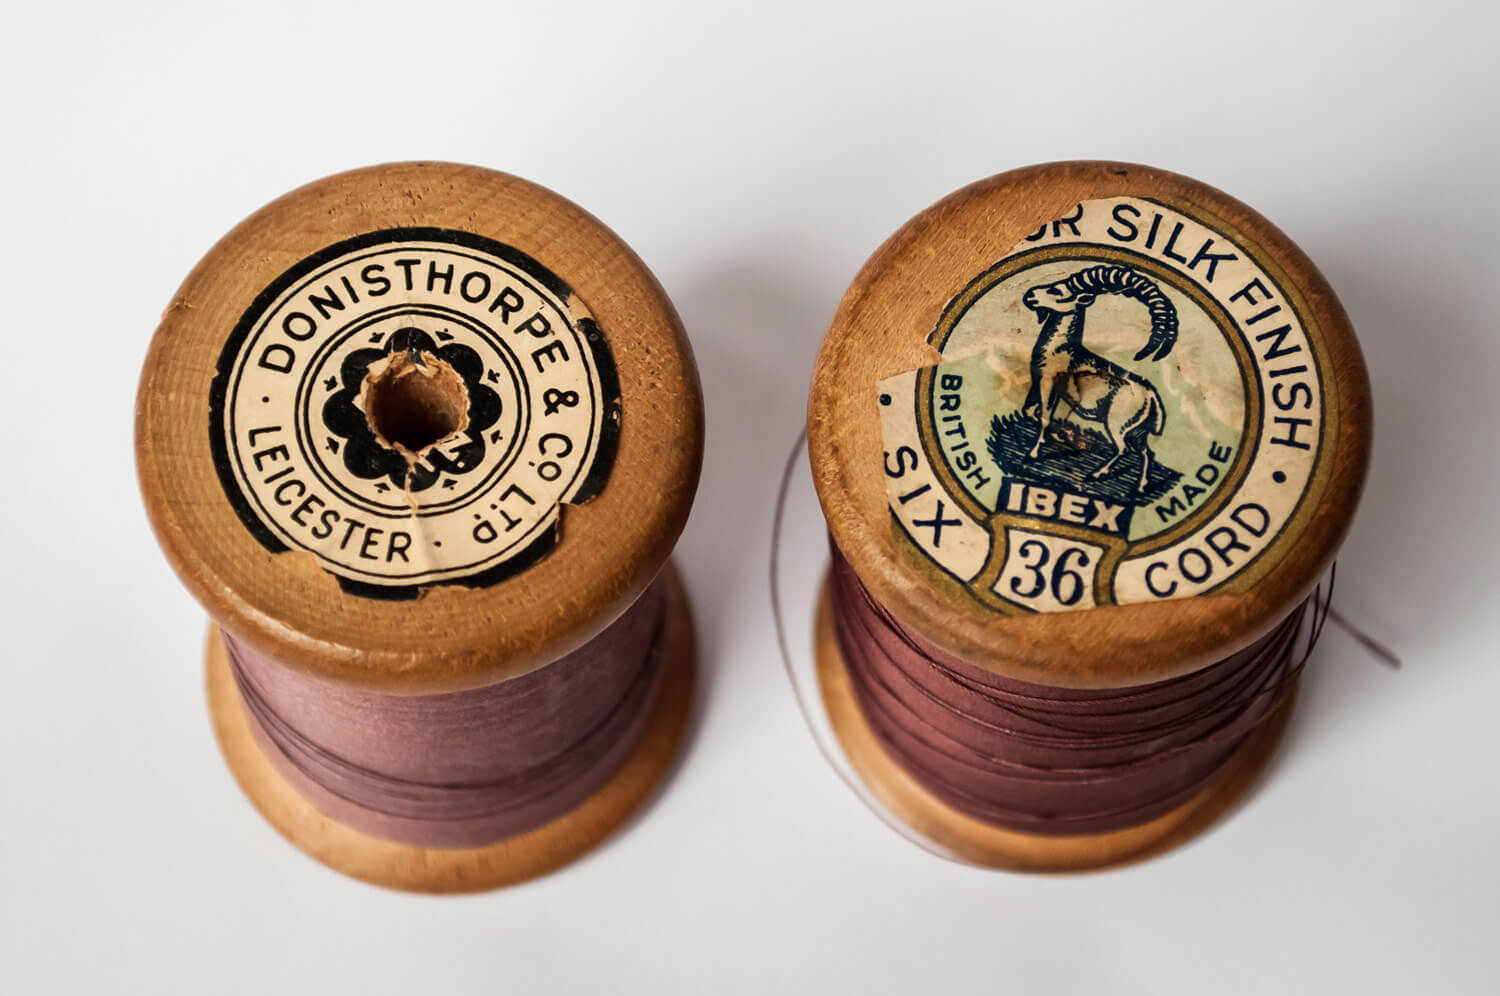 Donisthorpe branded cotton reels - from the collection of Leicester Museums